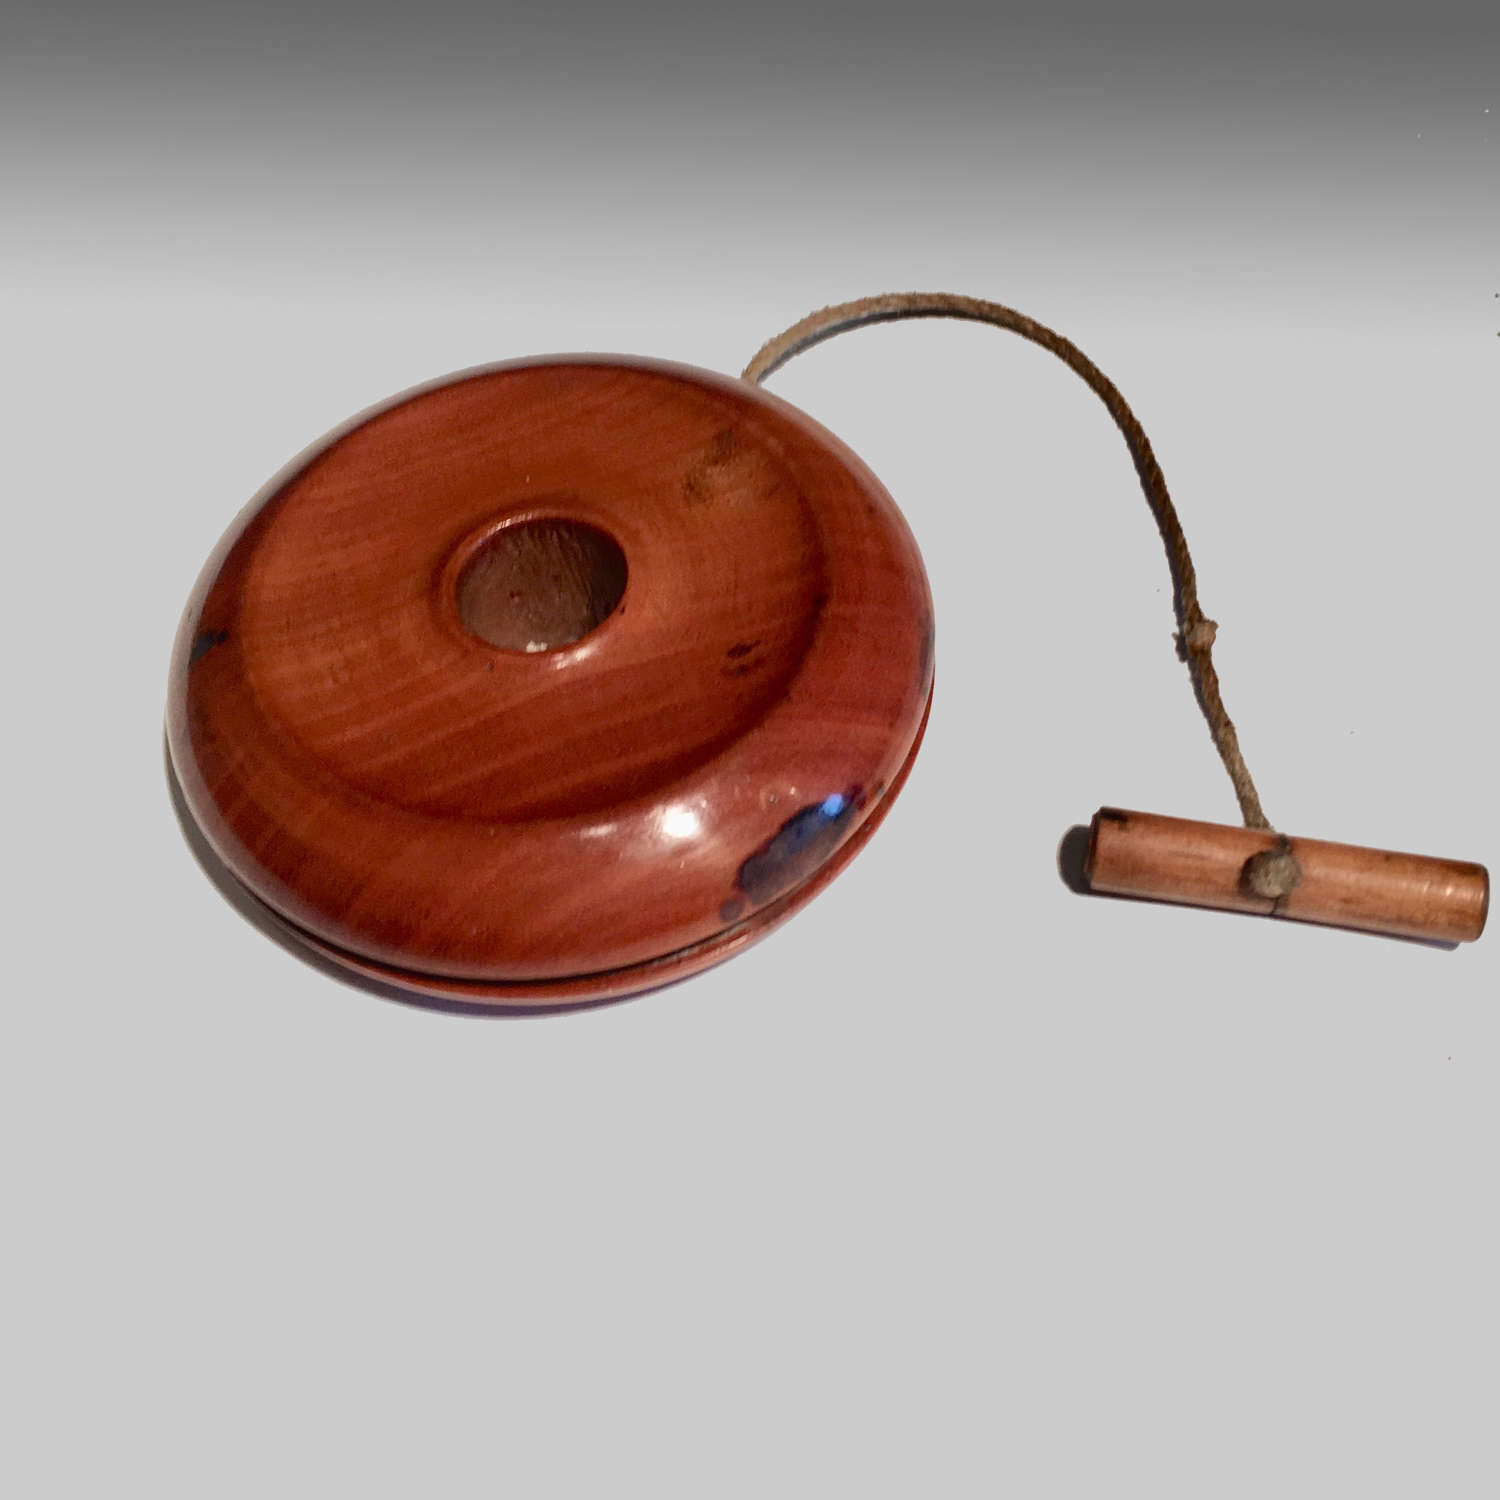 19th century treen fruitwood yo-yo